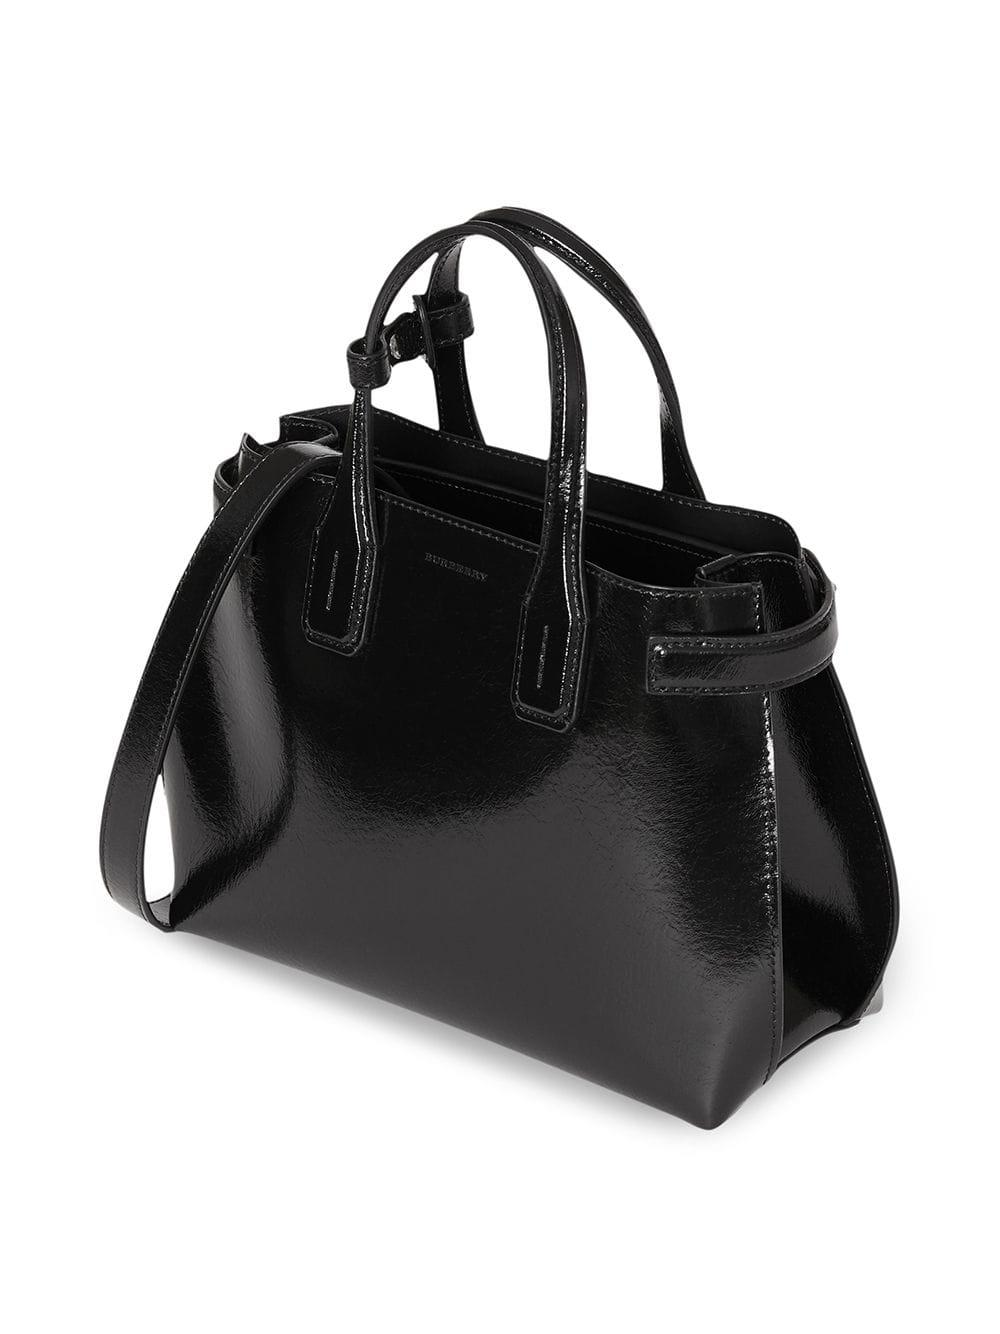 Burberry - Black The Small Soft Leather Banner - Lyst. View fullscreen 68aafe77924ed